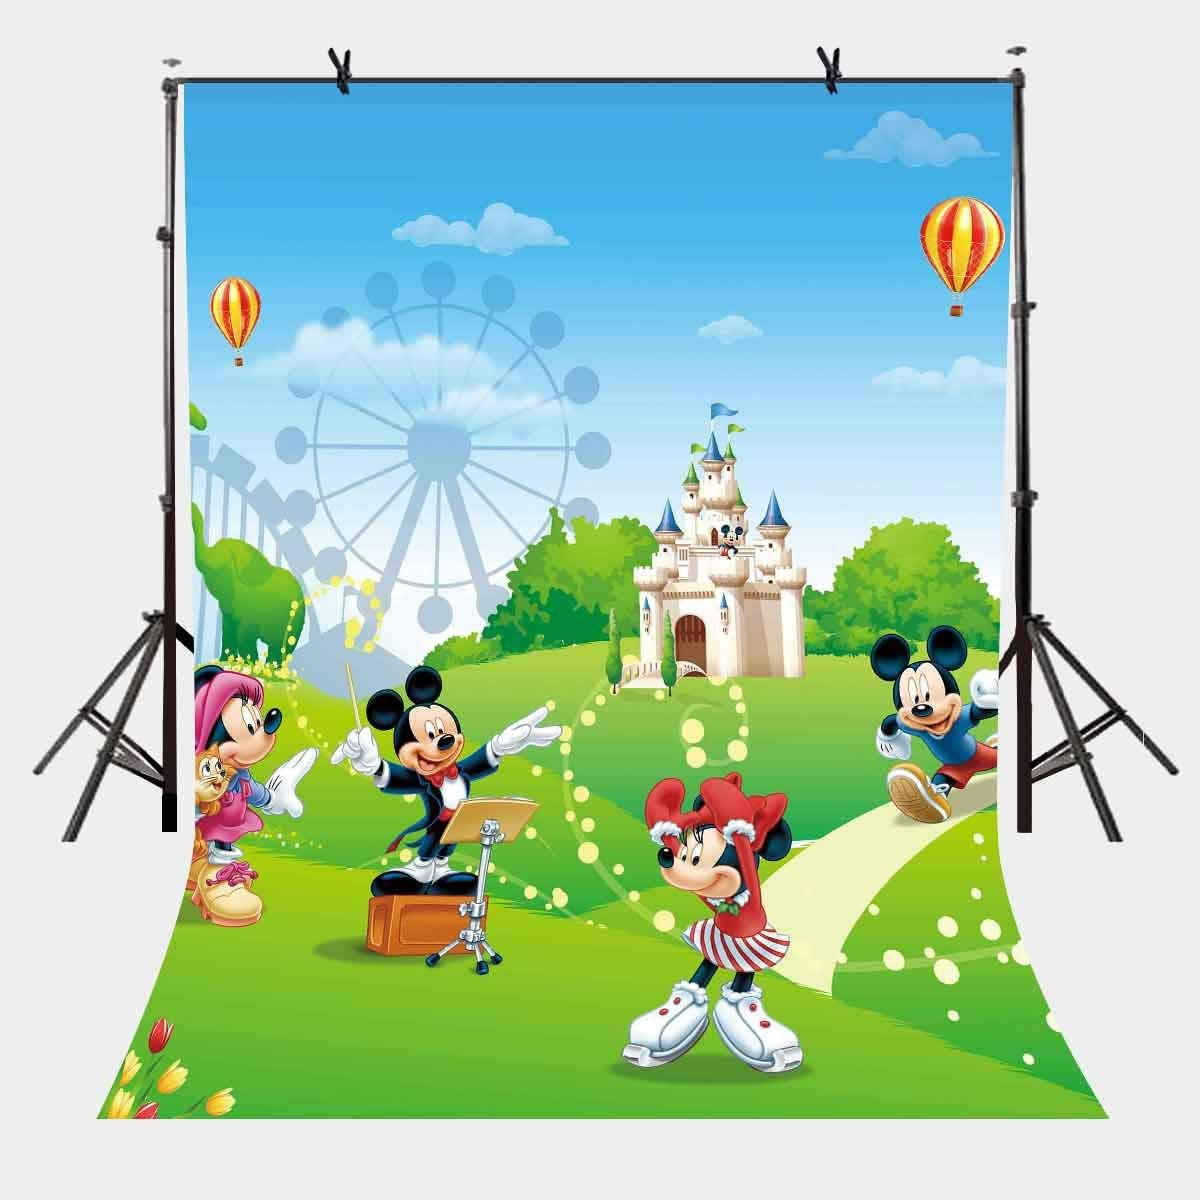 5x7ft Mickey Mouse Backdrop Classic Cartoon Character Photography Background and Studio Props